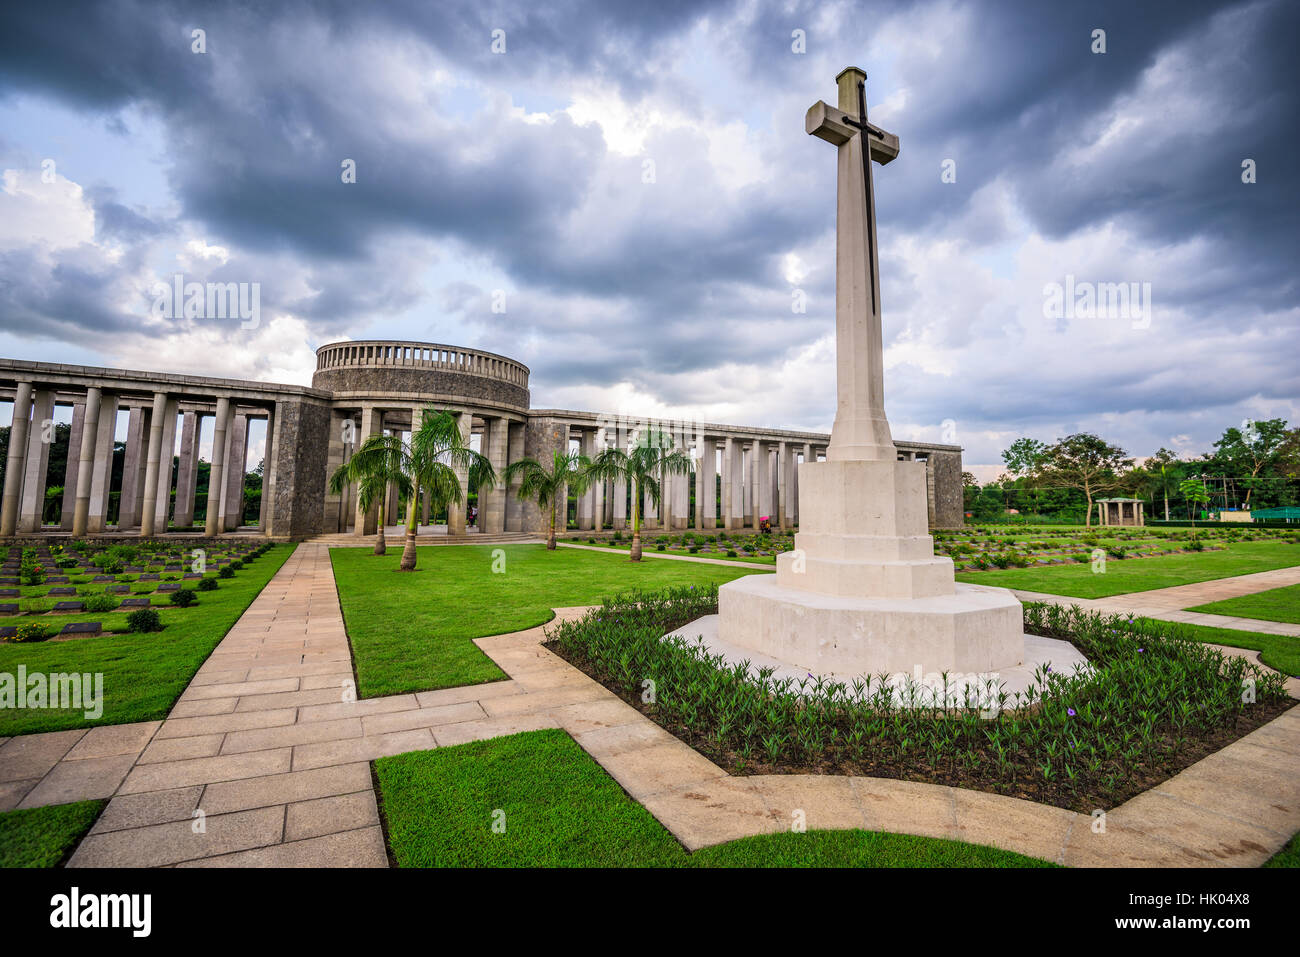 Taukkyan War Cemetery dedicated to allied losses during WWII near Yangon, Myanmar. - Stock Image